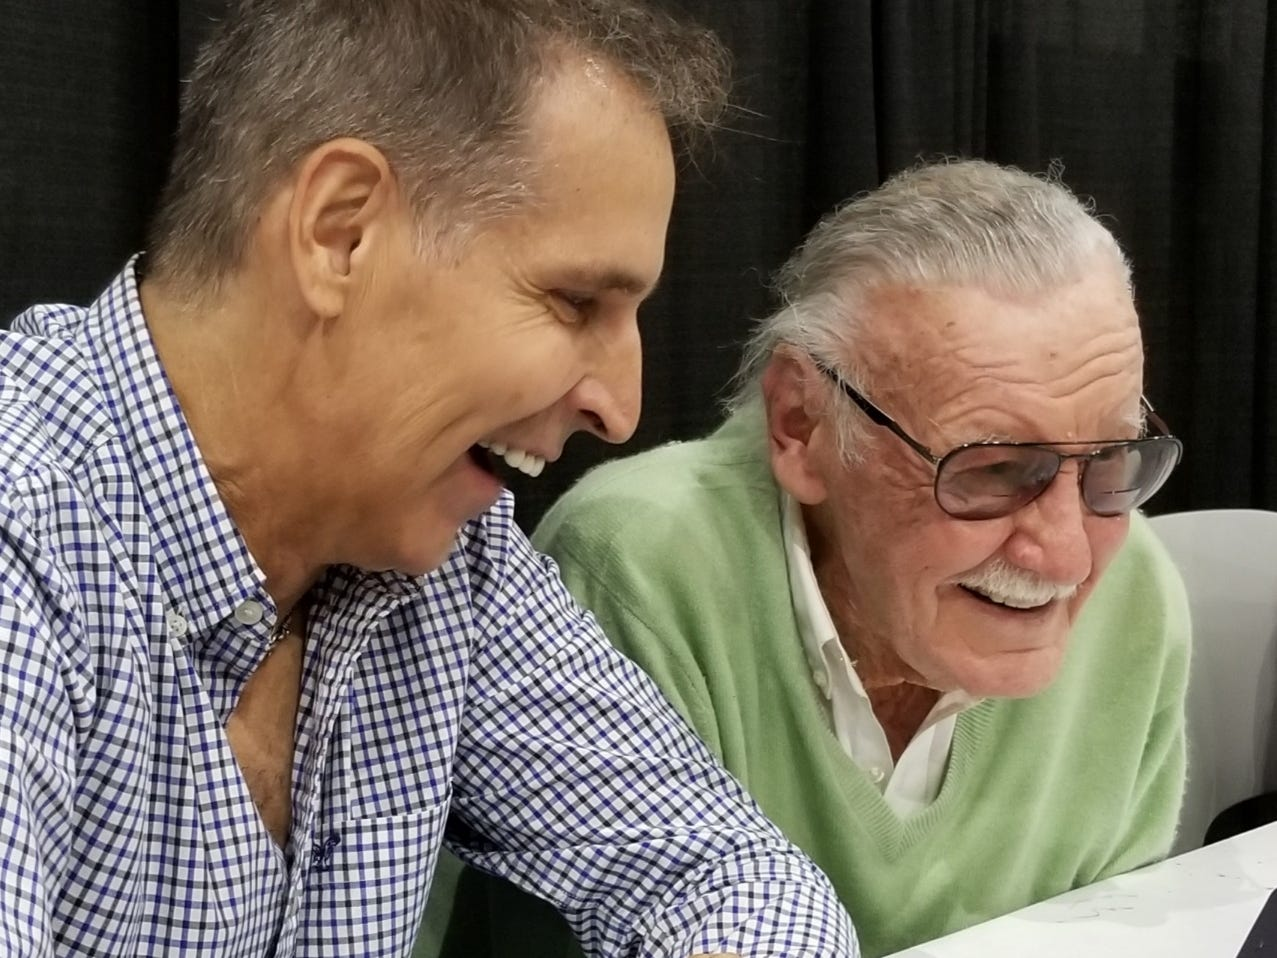 Spawn creator and McFarlane Toys founder Todd McFarlane (left) and Marvel Comics legend Stan Lee. Lee died Nov. 12 at age 85.